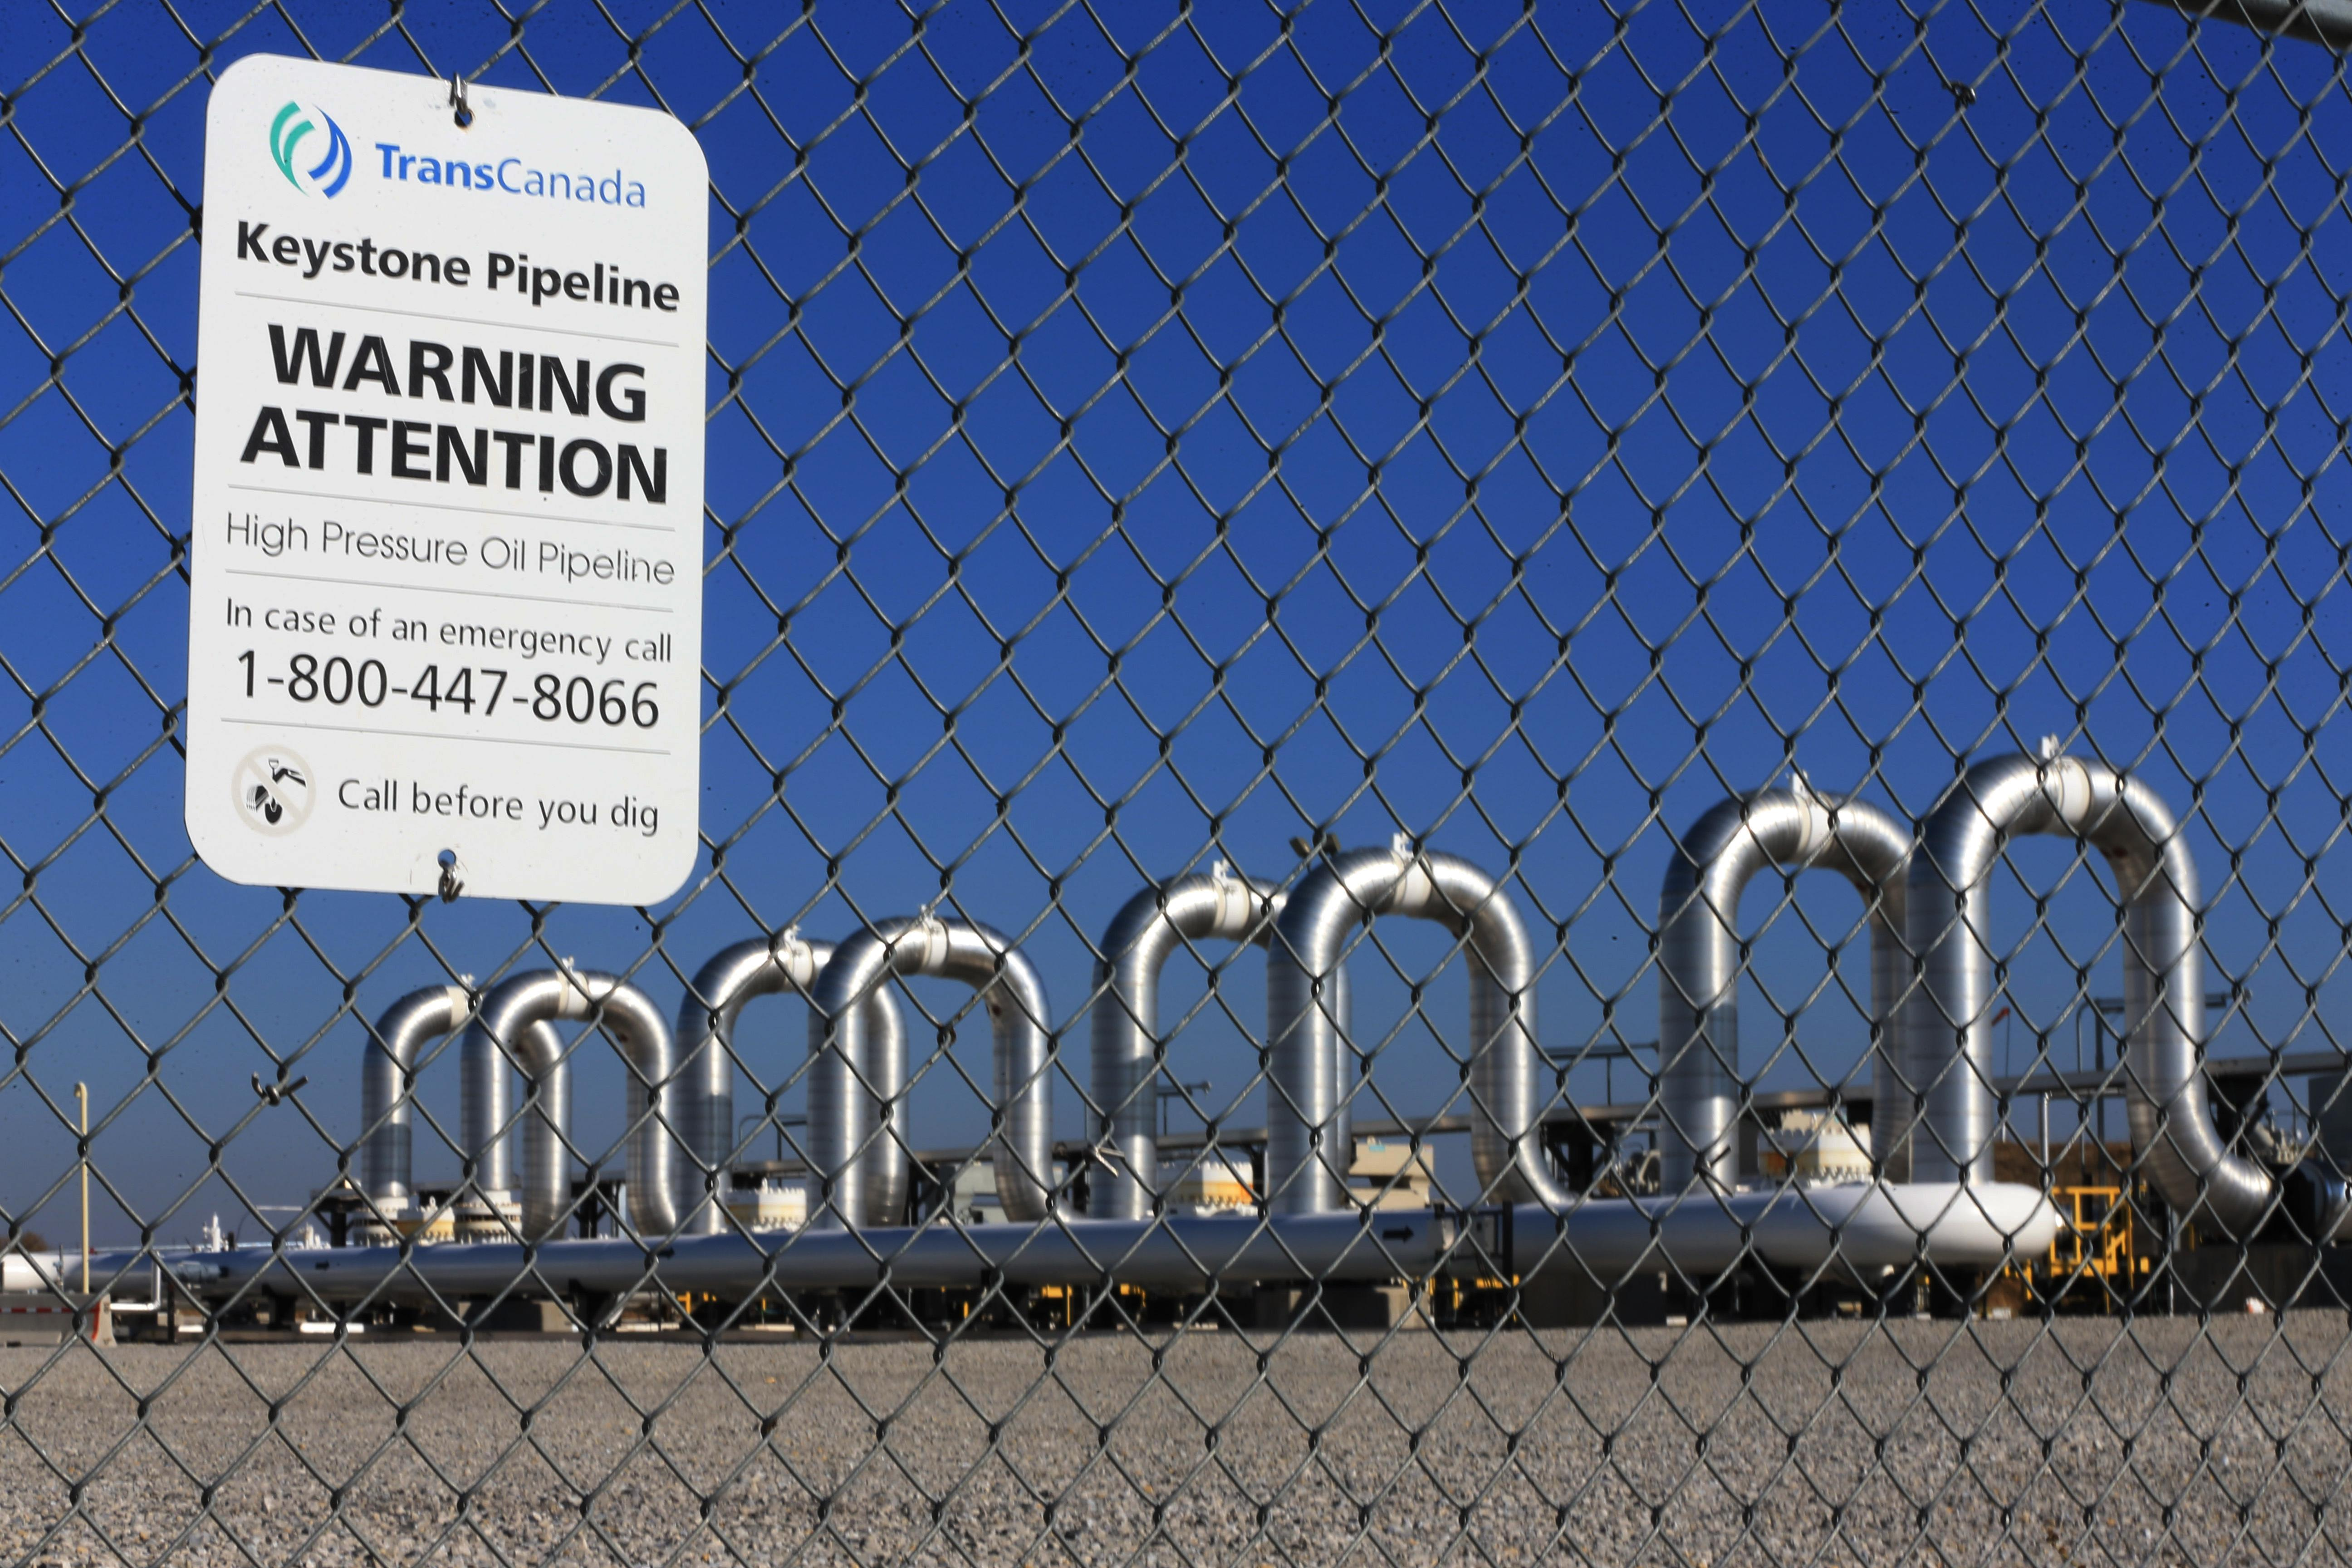 Trump issues new permit to try to speed Keystone XL pipeline construction